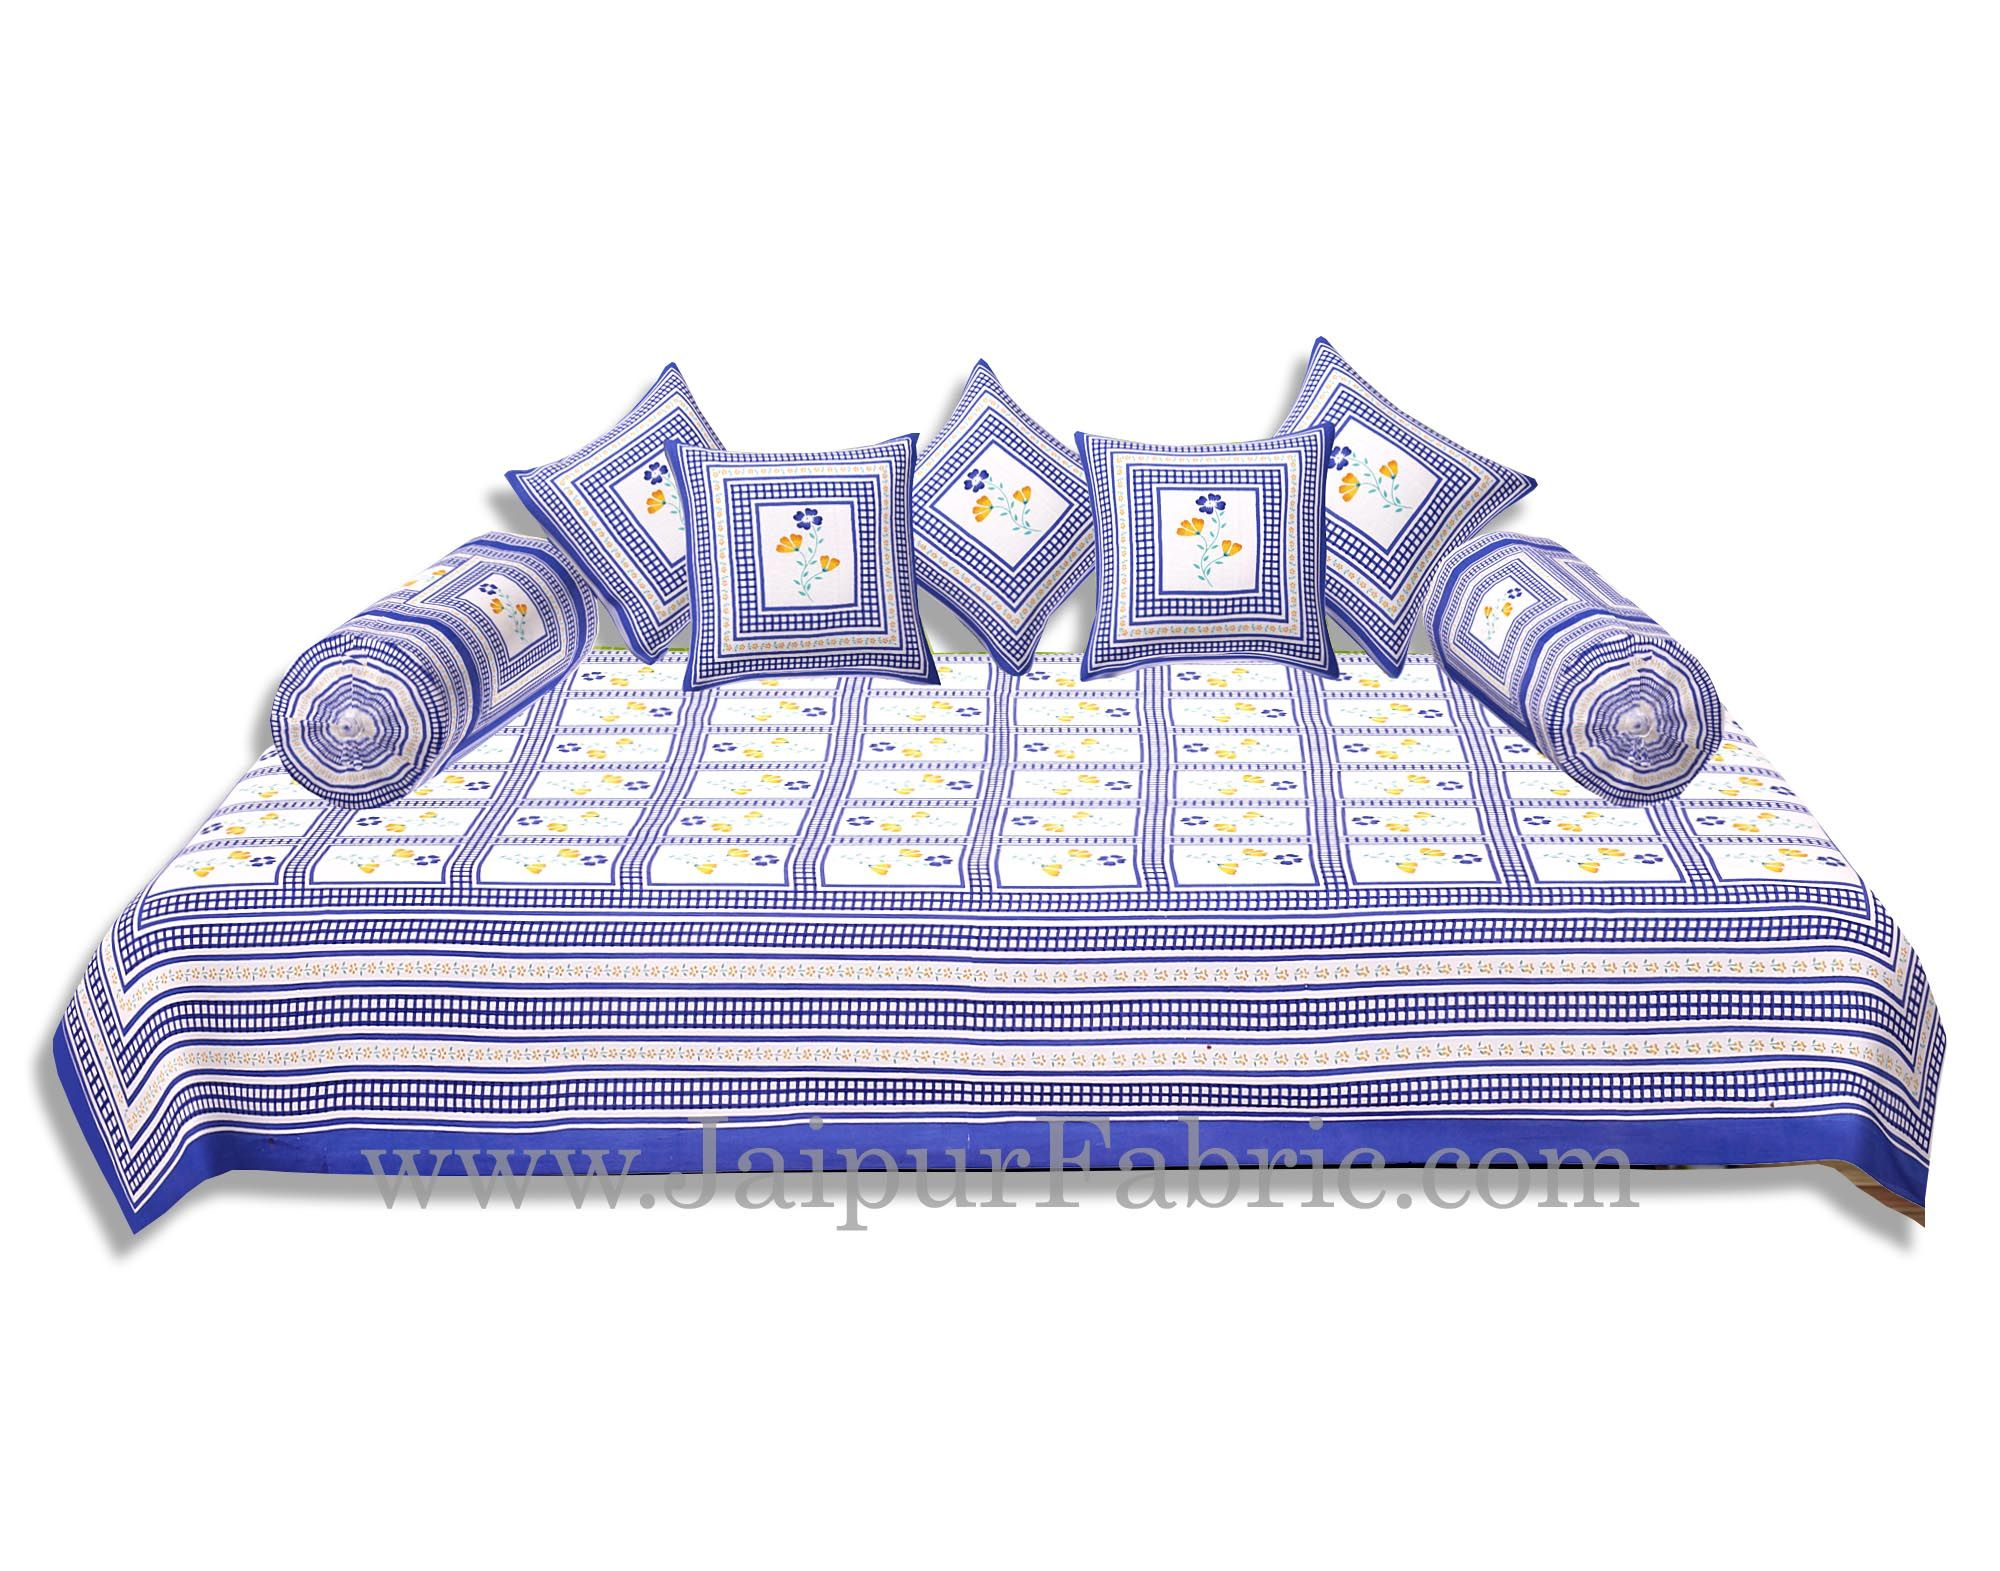 Blue Border Cream Base Floral Print In Checks Diwan Set